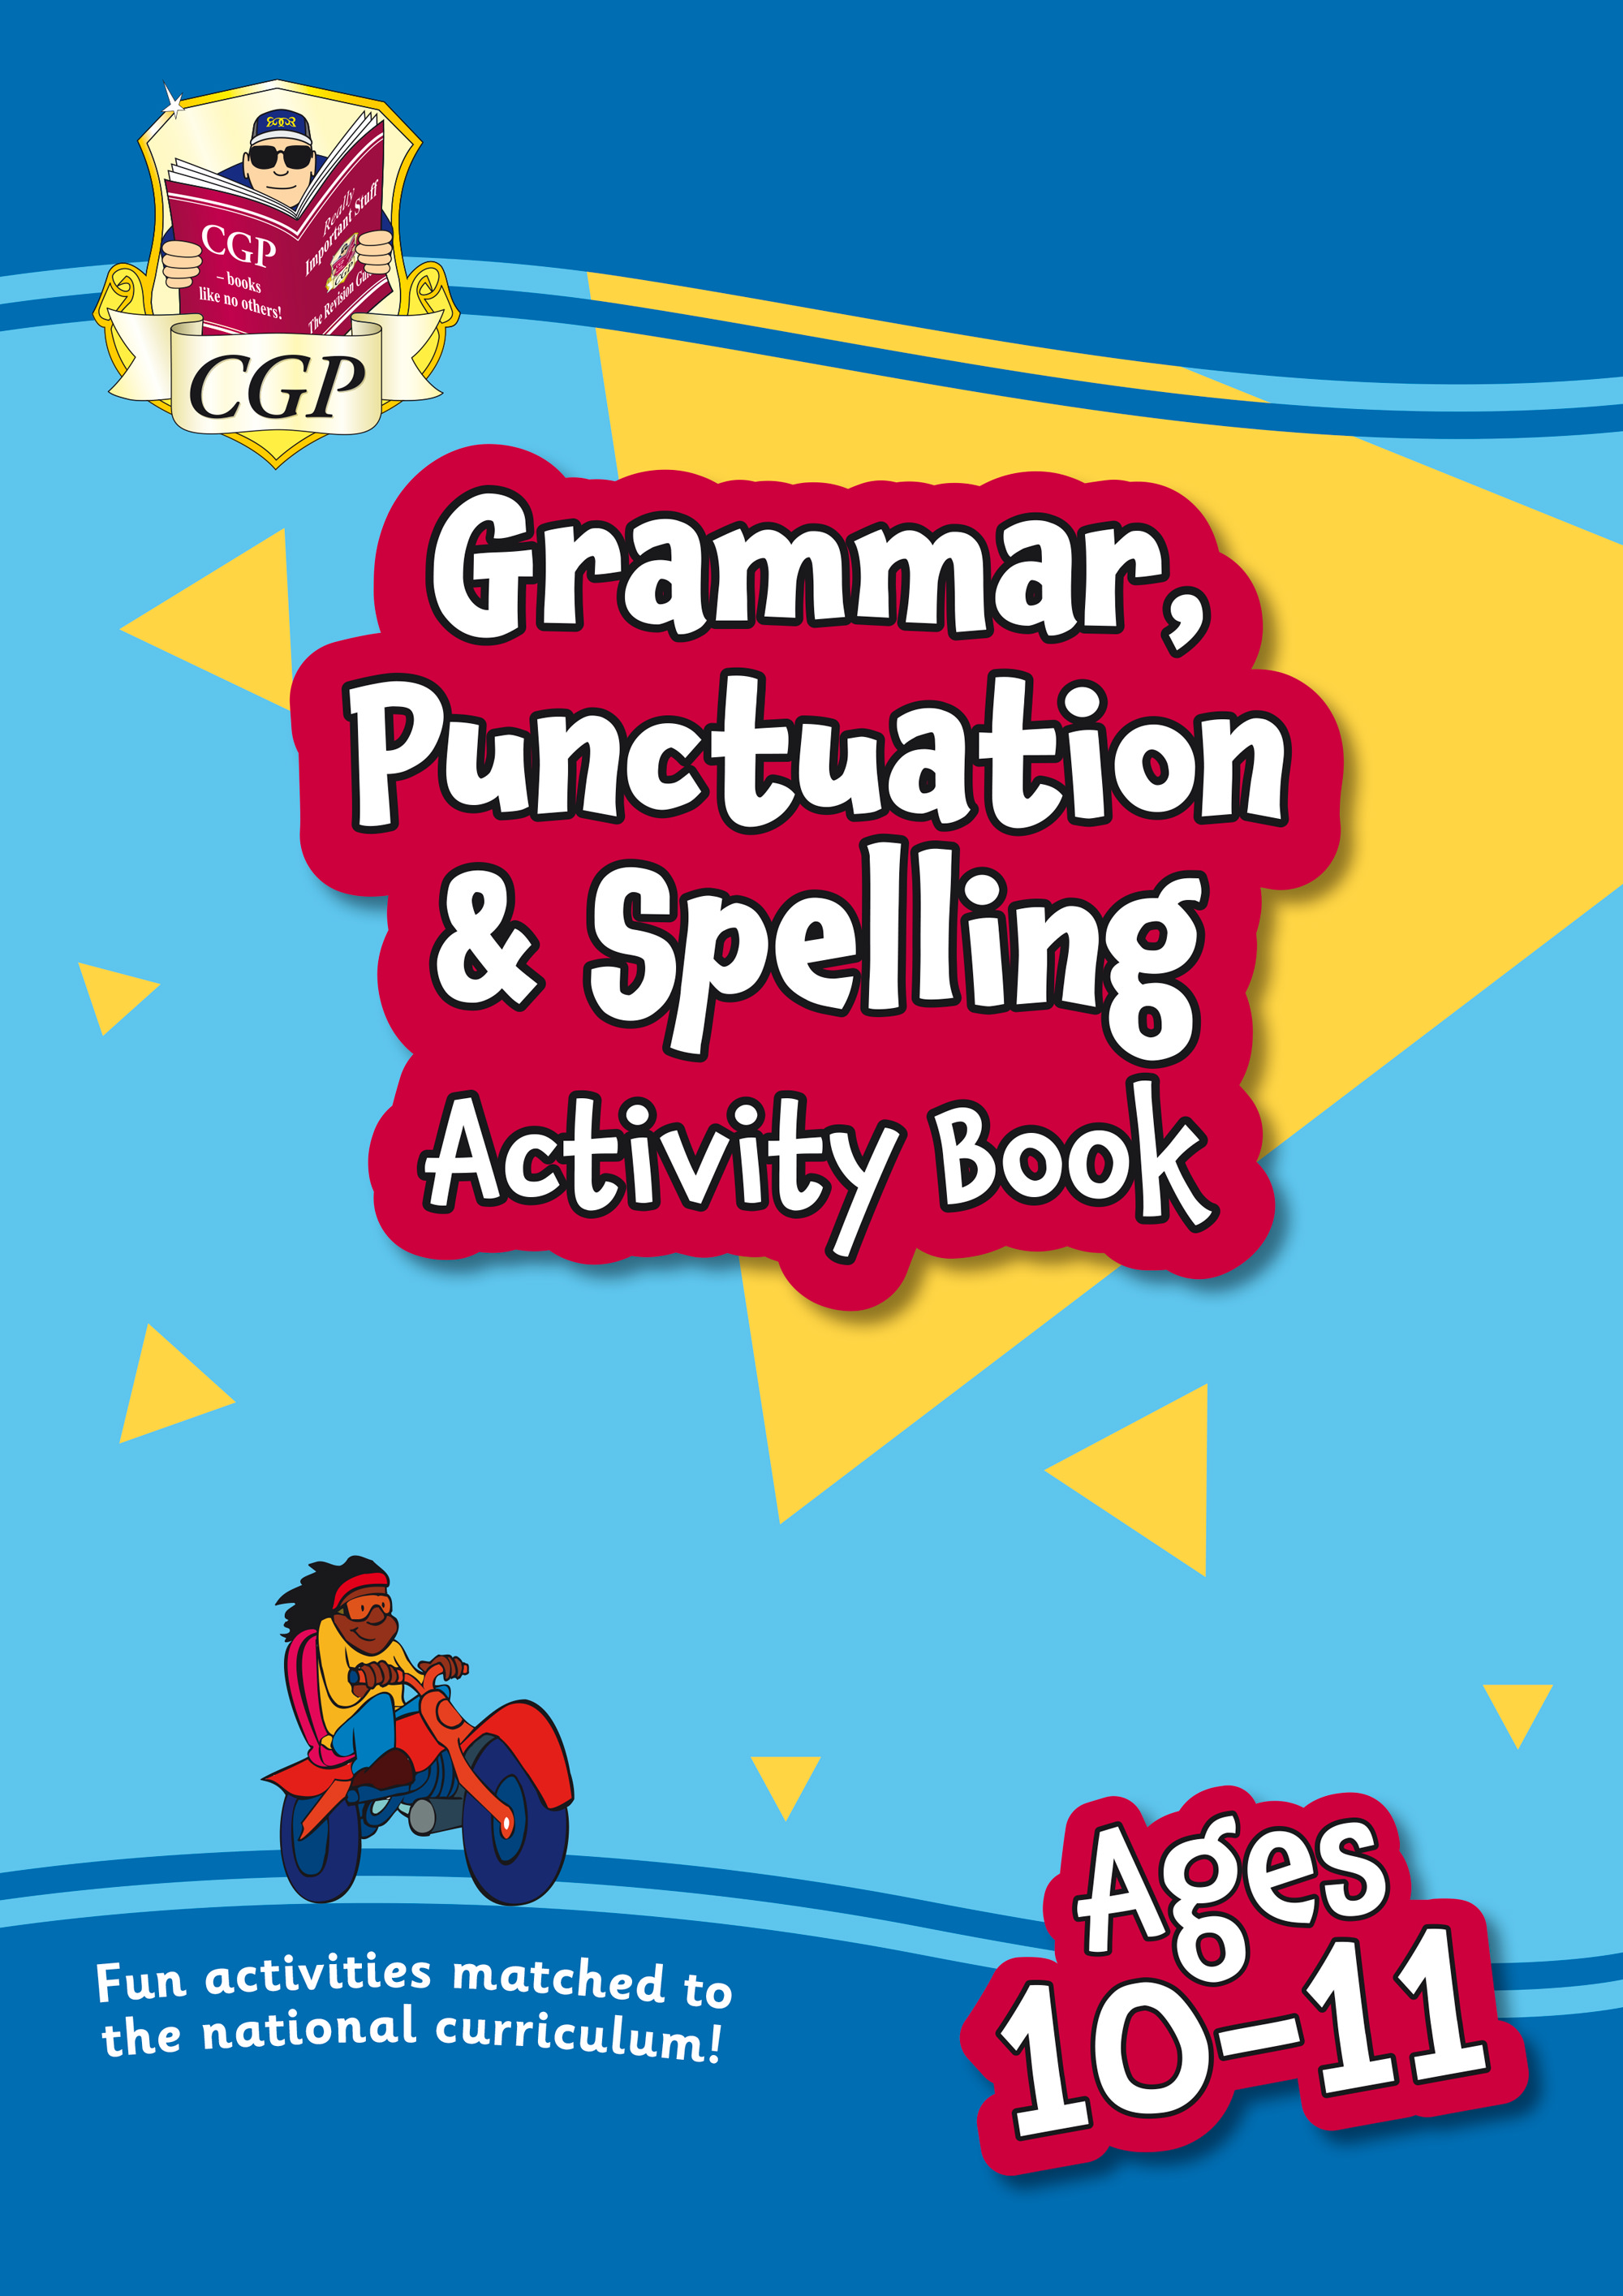 EPF6GQ21 - New Grammar, Punctuation & Spelling Activity Book for Ages 10-11